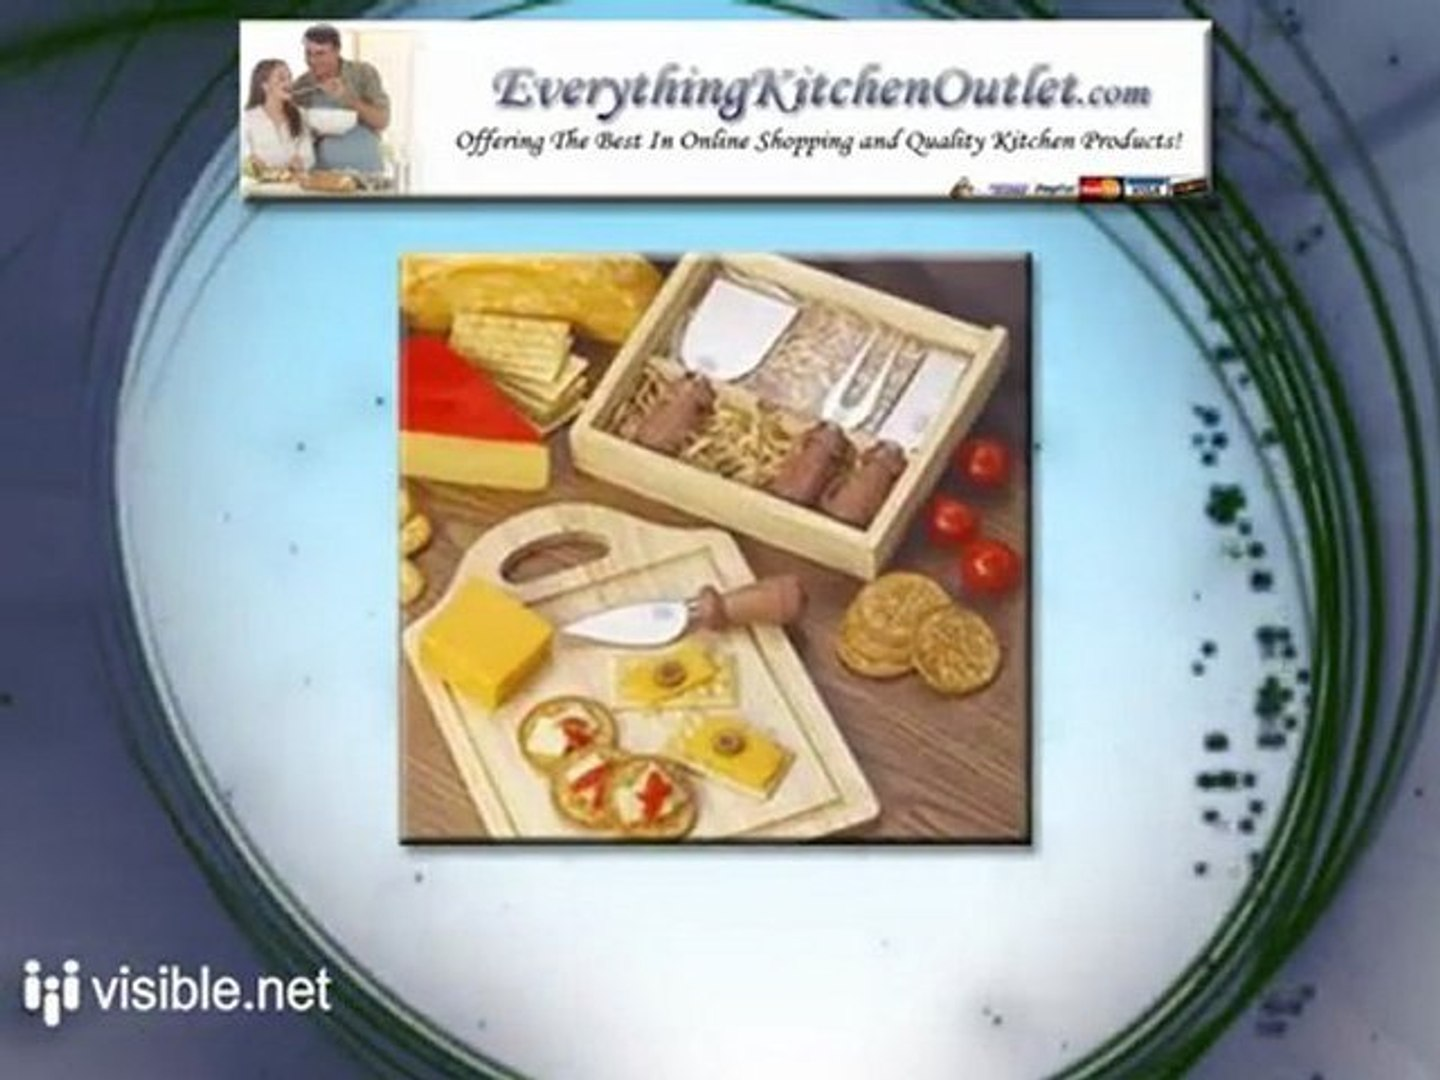 Everything Kitchen Outlet - Home Kitchen Accessories Store